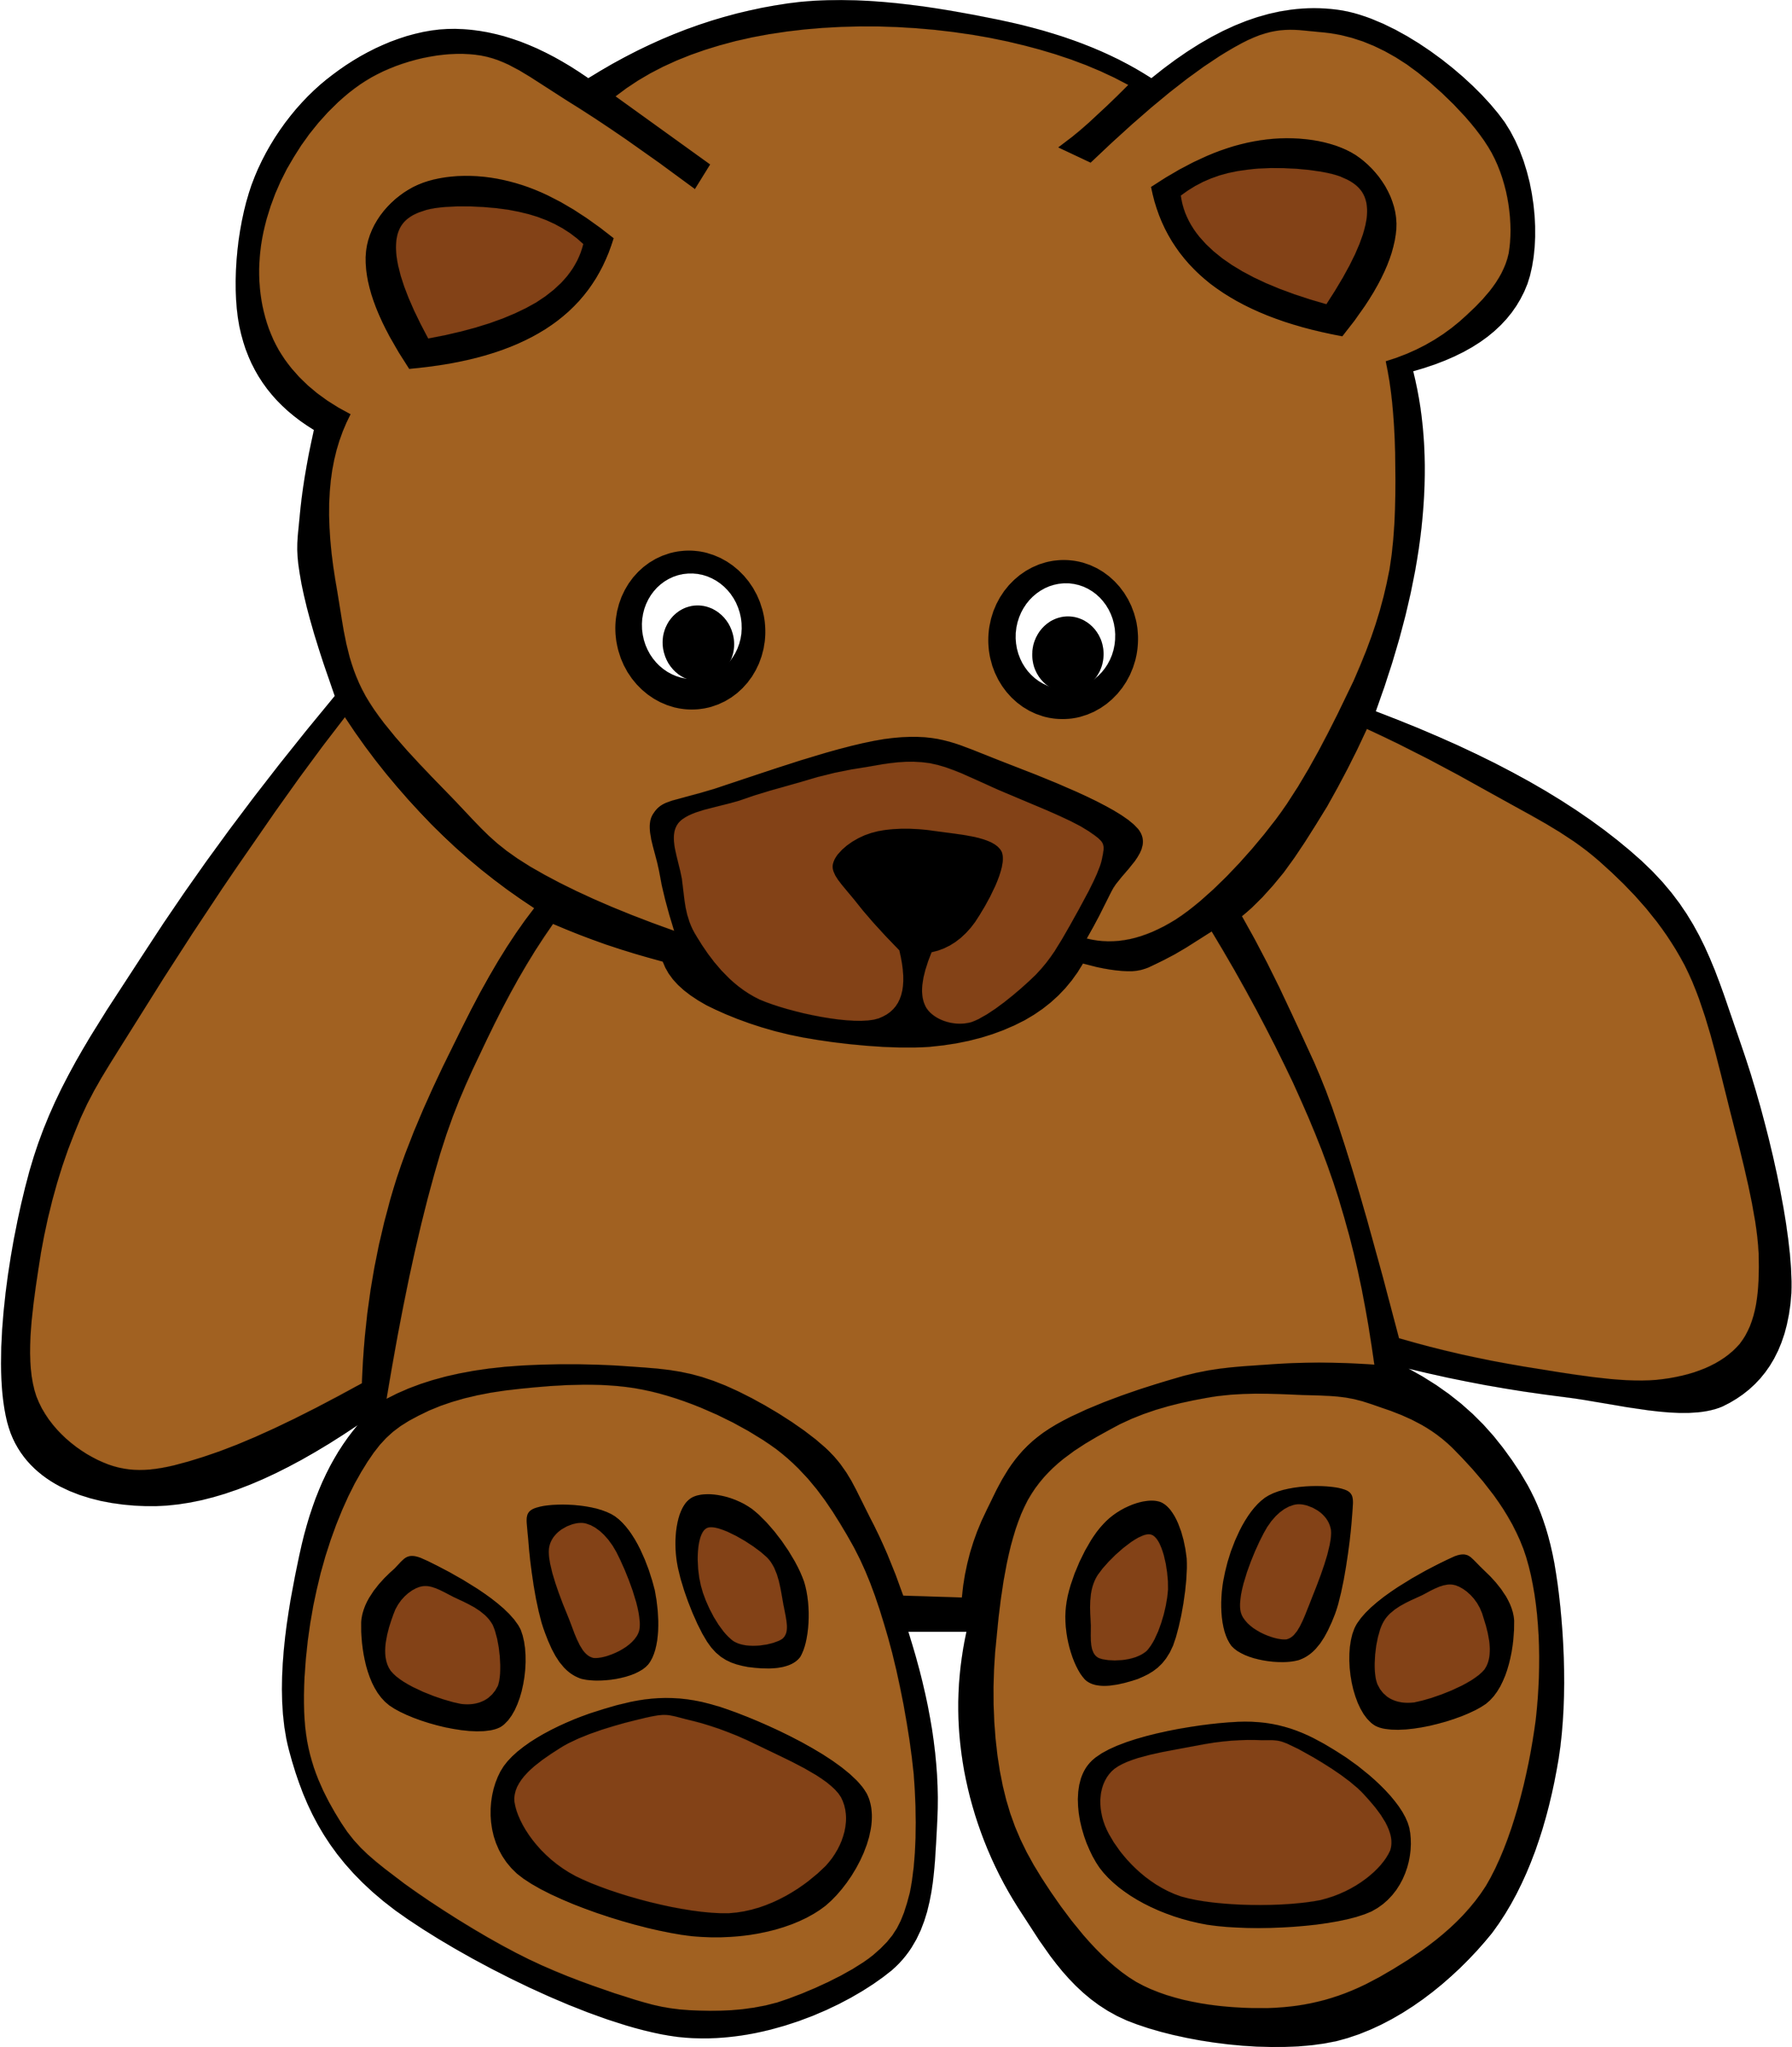 Went over clipart banner royalty free library Puggles | Bears | Teddy bear coloring pages, Bear clipart ... banner royalty free library